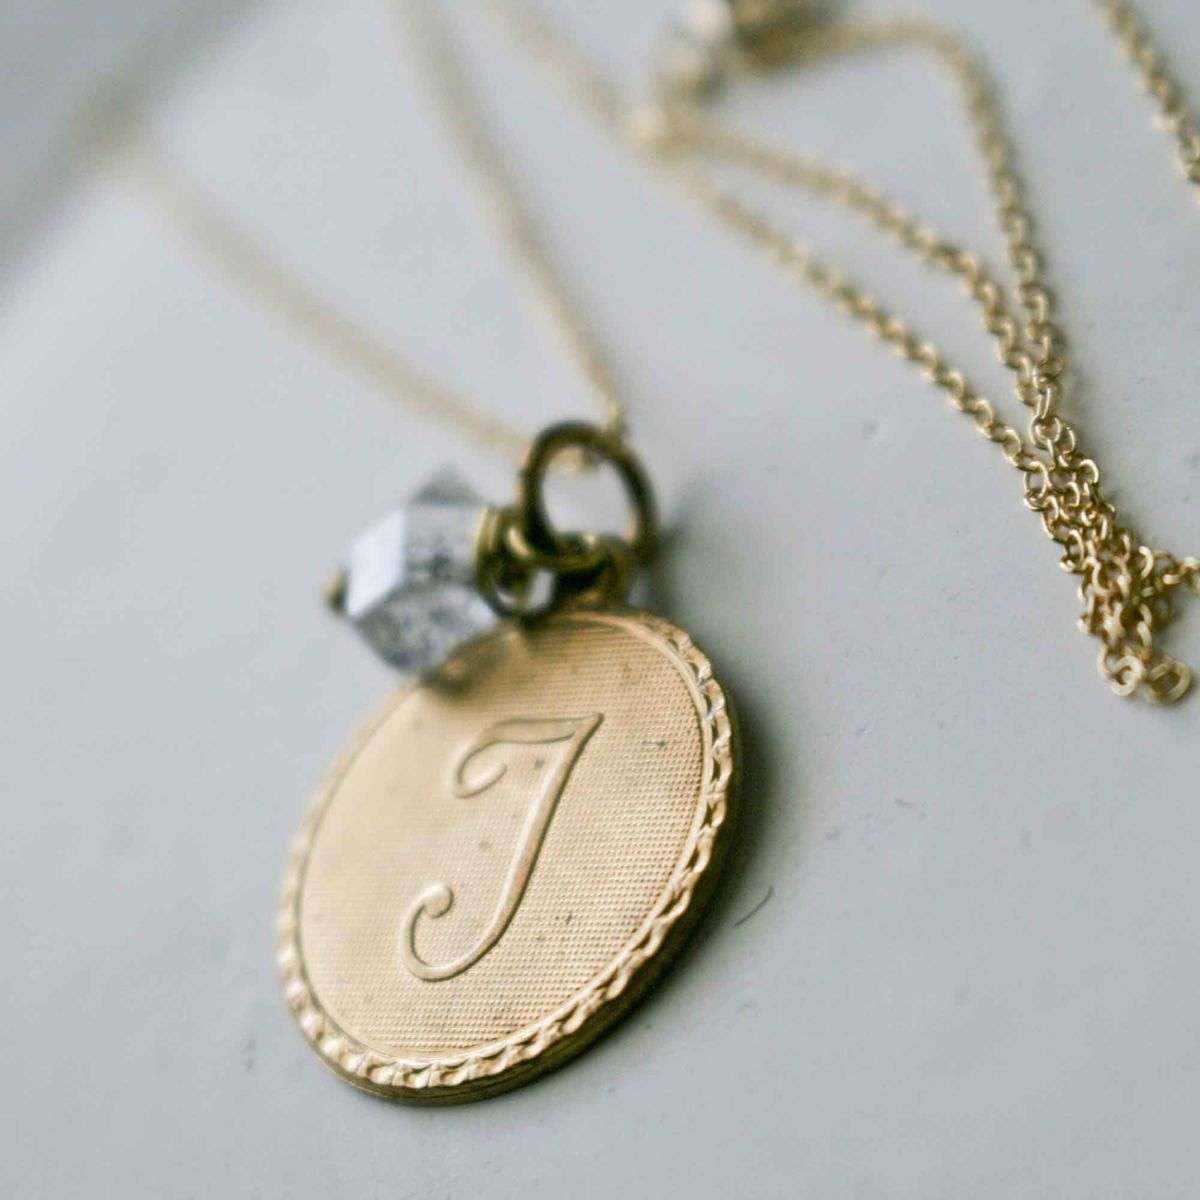 Uppercase Cursive Initial Monogram Letter Round Disc Charm Necklace Pertaining To Most Up To Date Letter R Alphabet Locket Element Necklaces (Gallery 15 of 25)